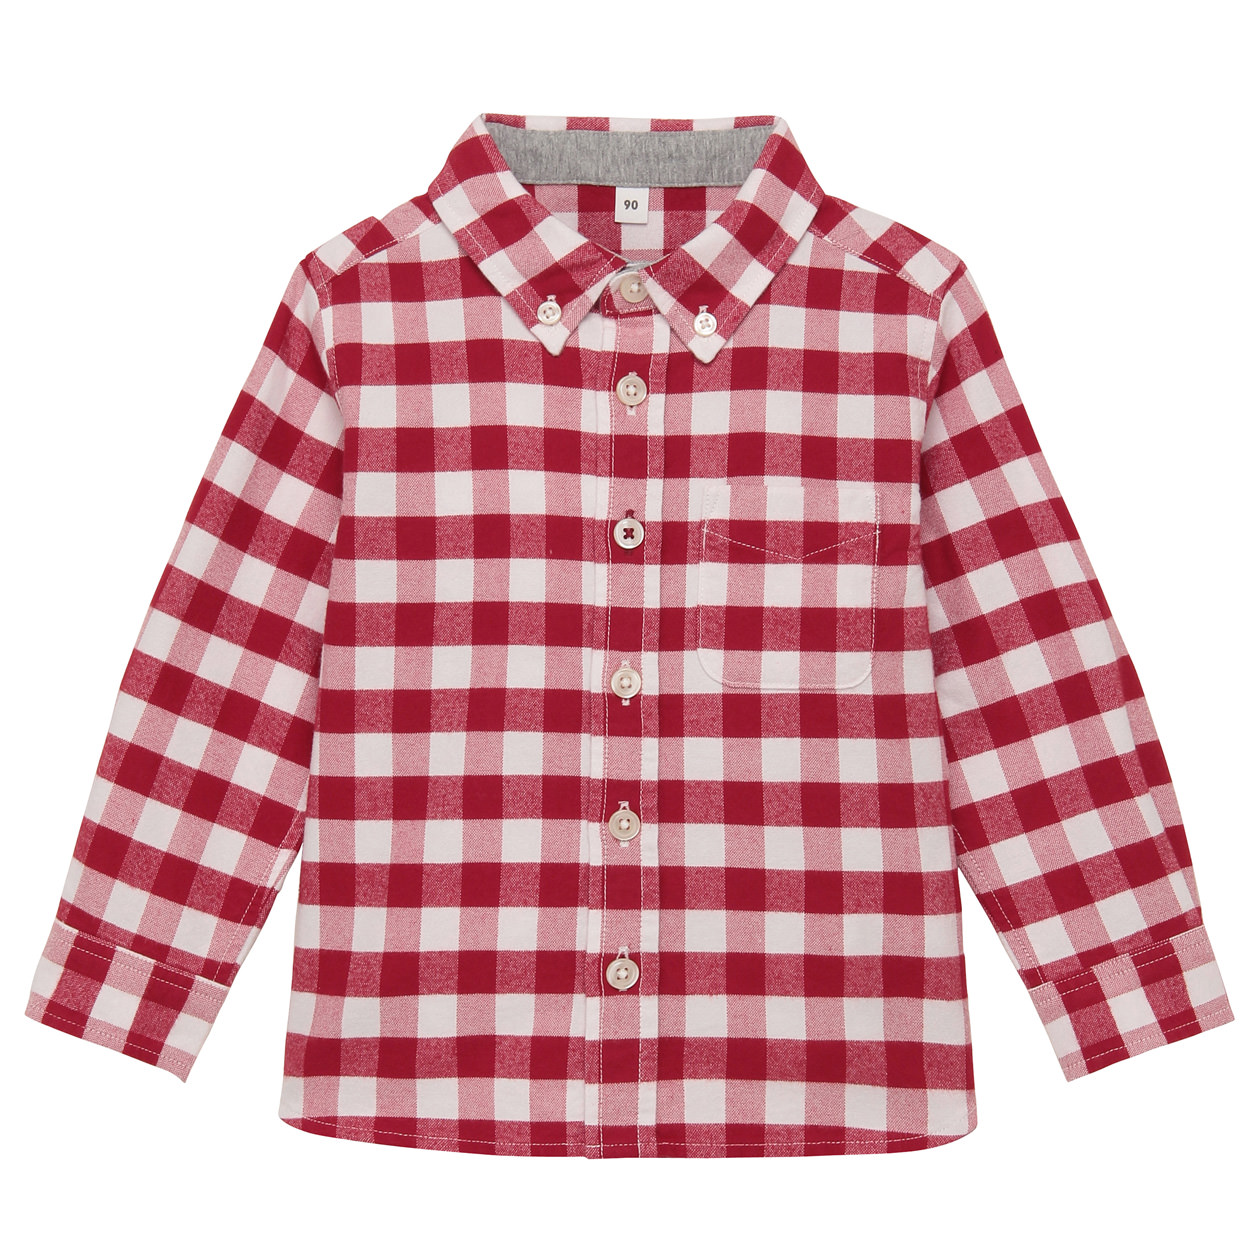 Organic Cotton Oxford Button Down Shirt Baby 100 Red Check